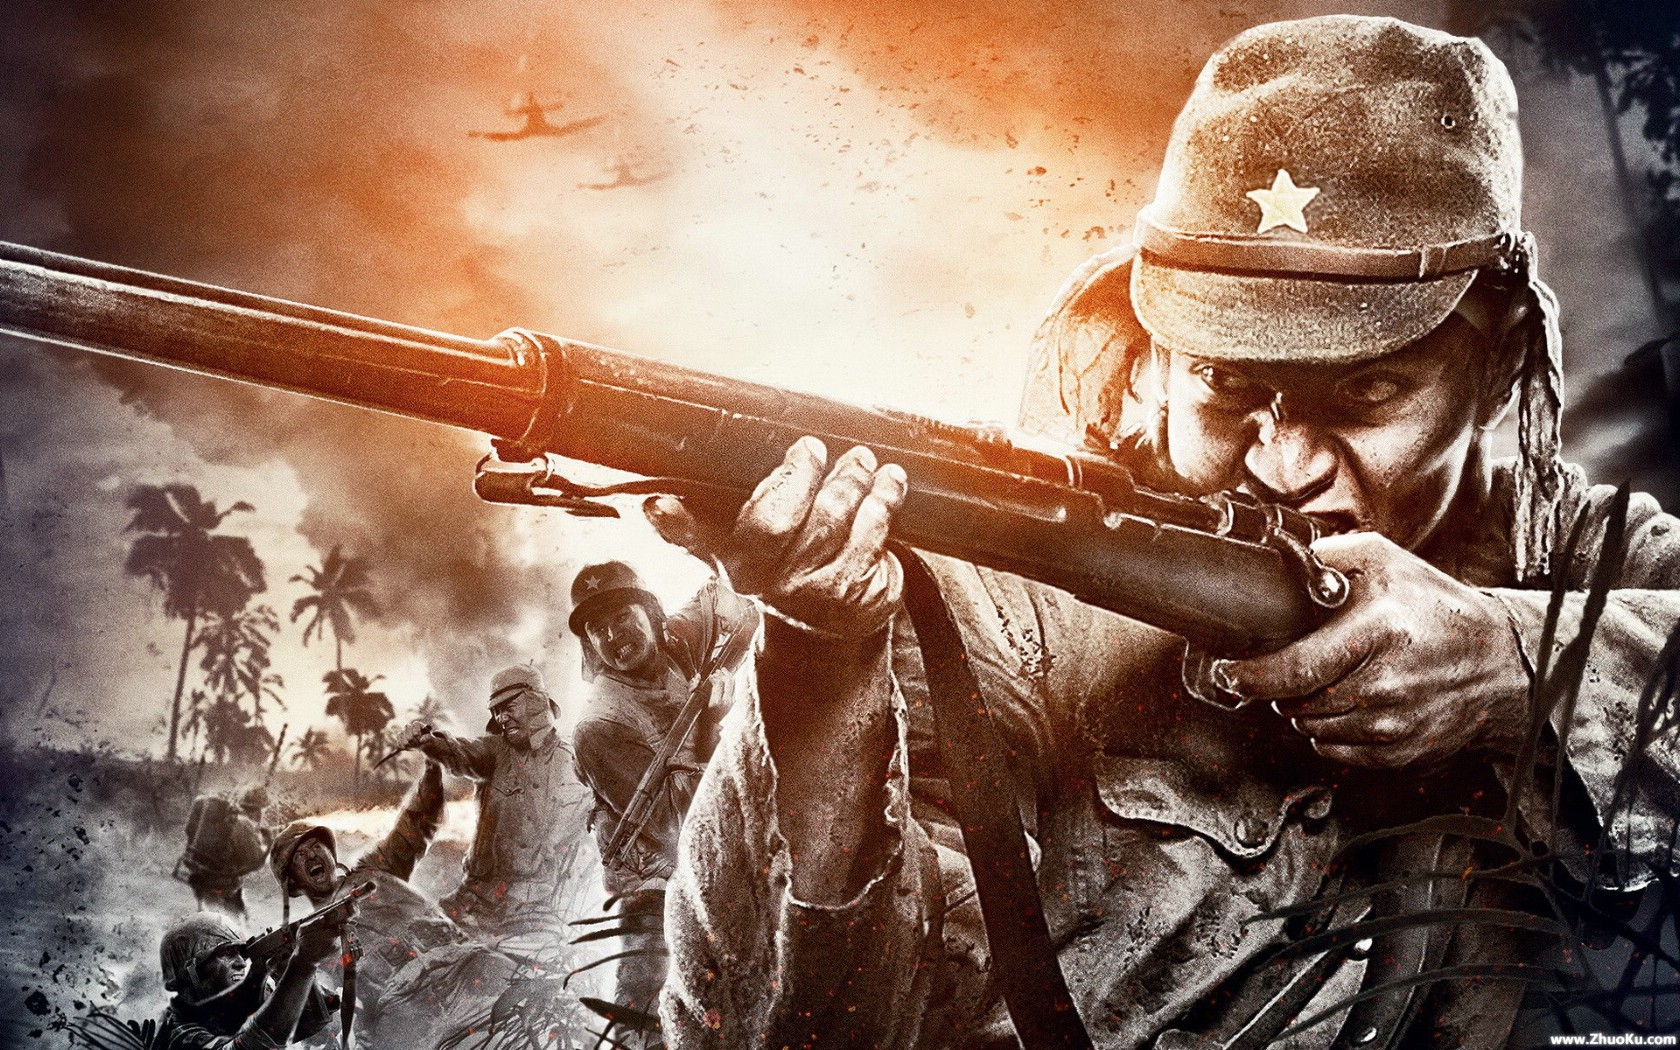 Call Of Duty Ww2 Zombies Wallpaper: COD WAW Wallpapers